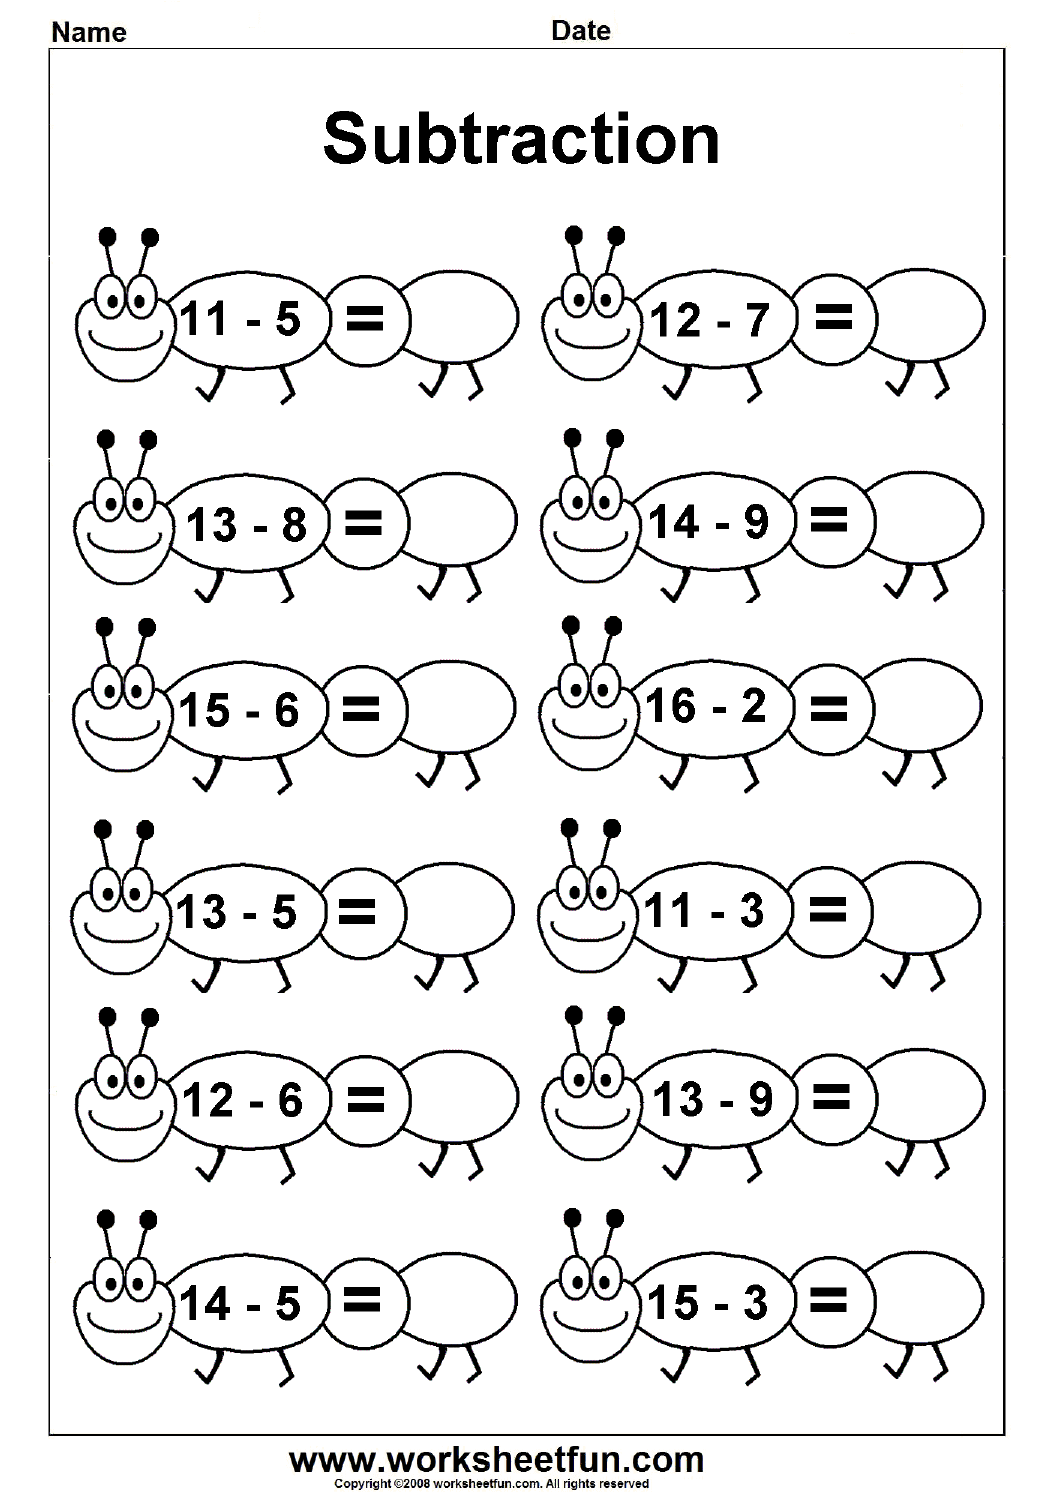 Subtraction 4 Kindergarten Subtraction Worksheets Free Printable Worksheets Worksheetfun